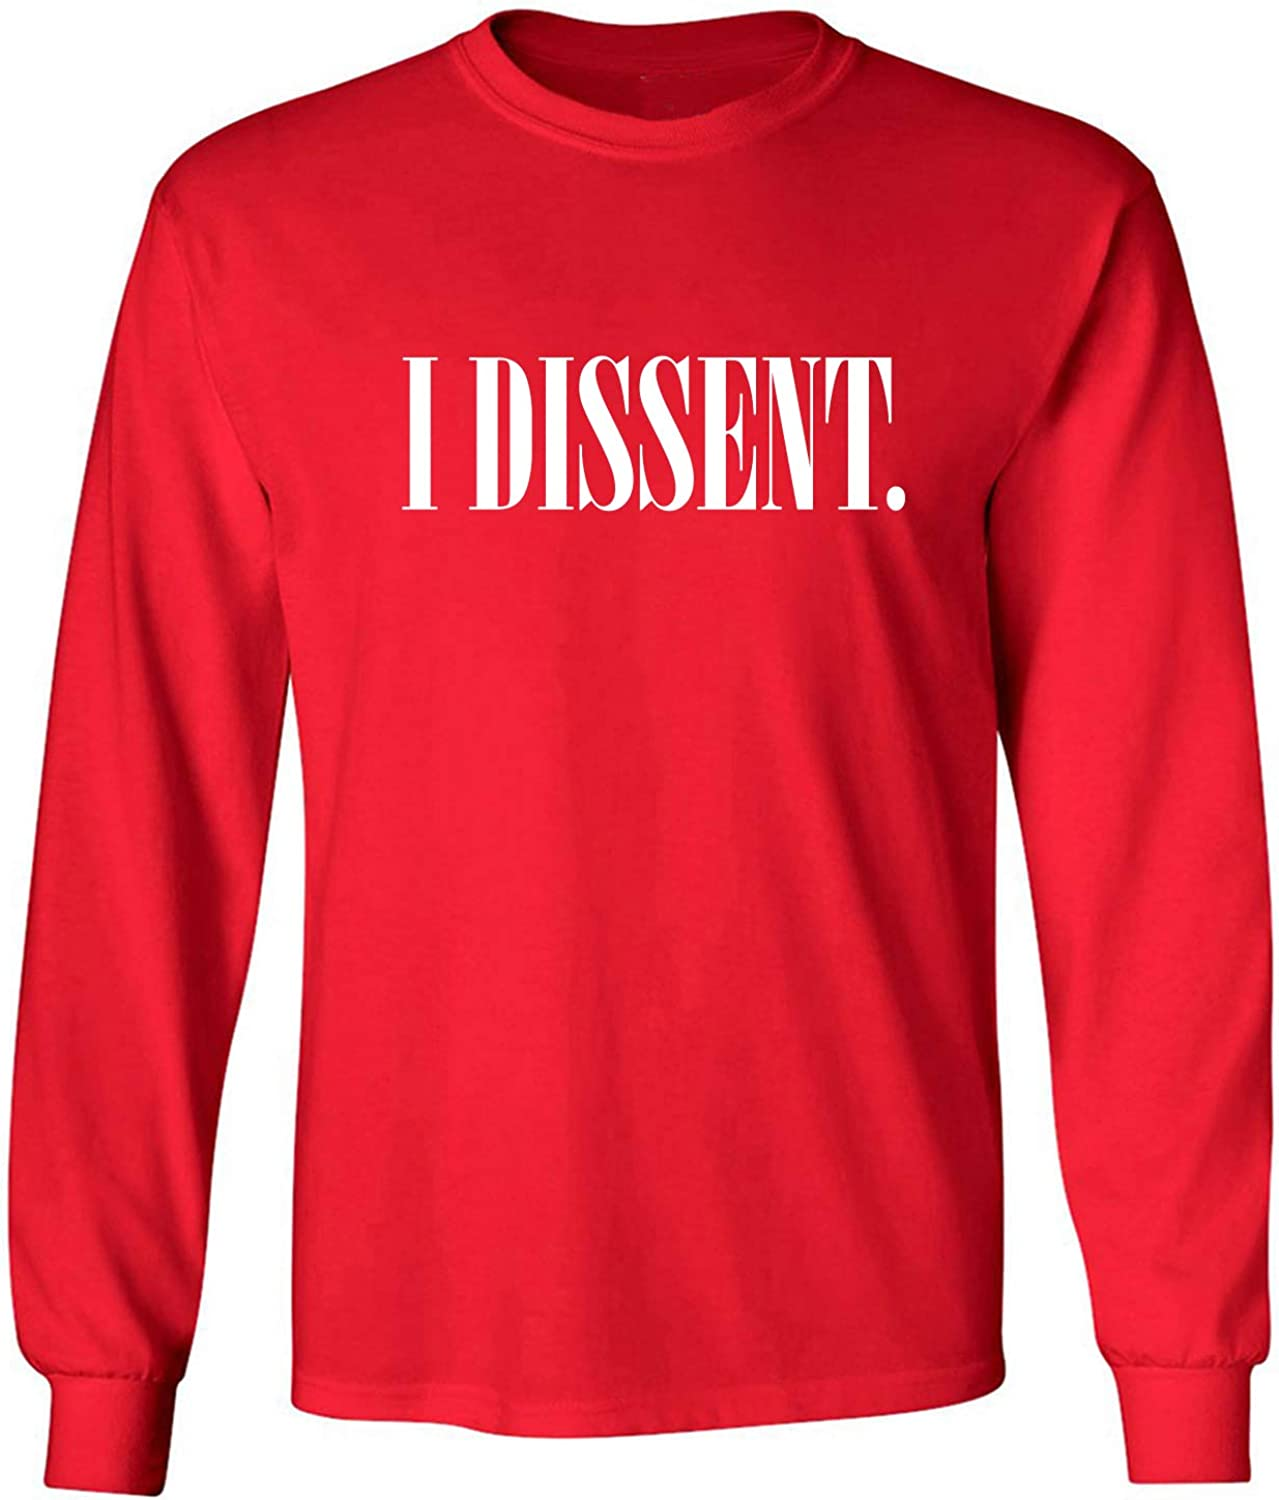 I Dissent Adult Long Sleeve T-Shirt in Red - XXX-Large